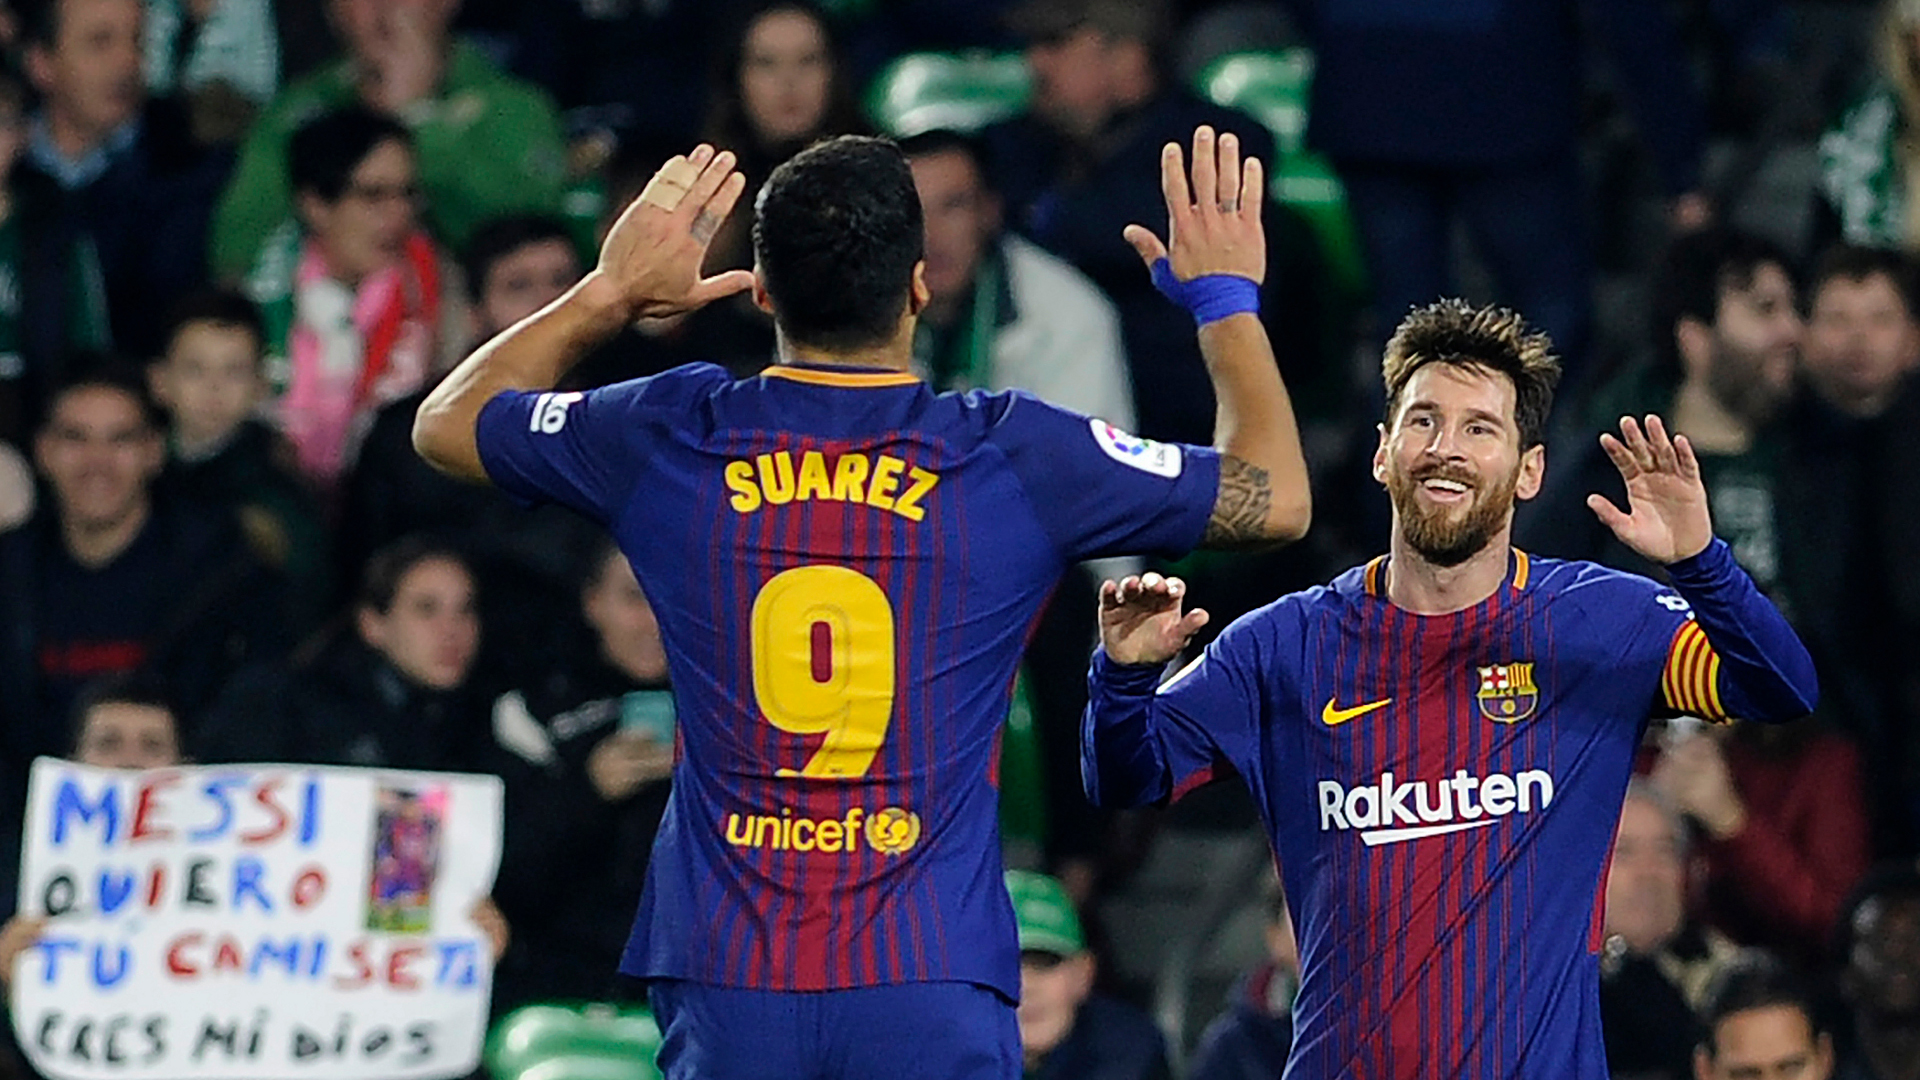 Barcelona 8, Huesca 2: Messi inspires at Camp Nou